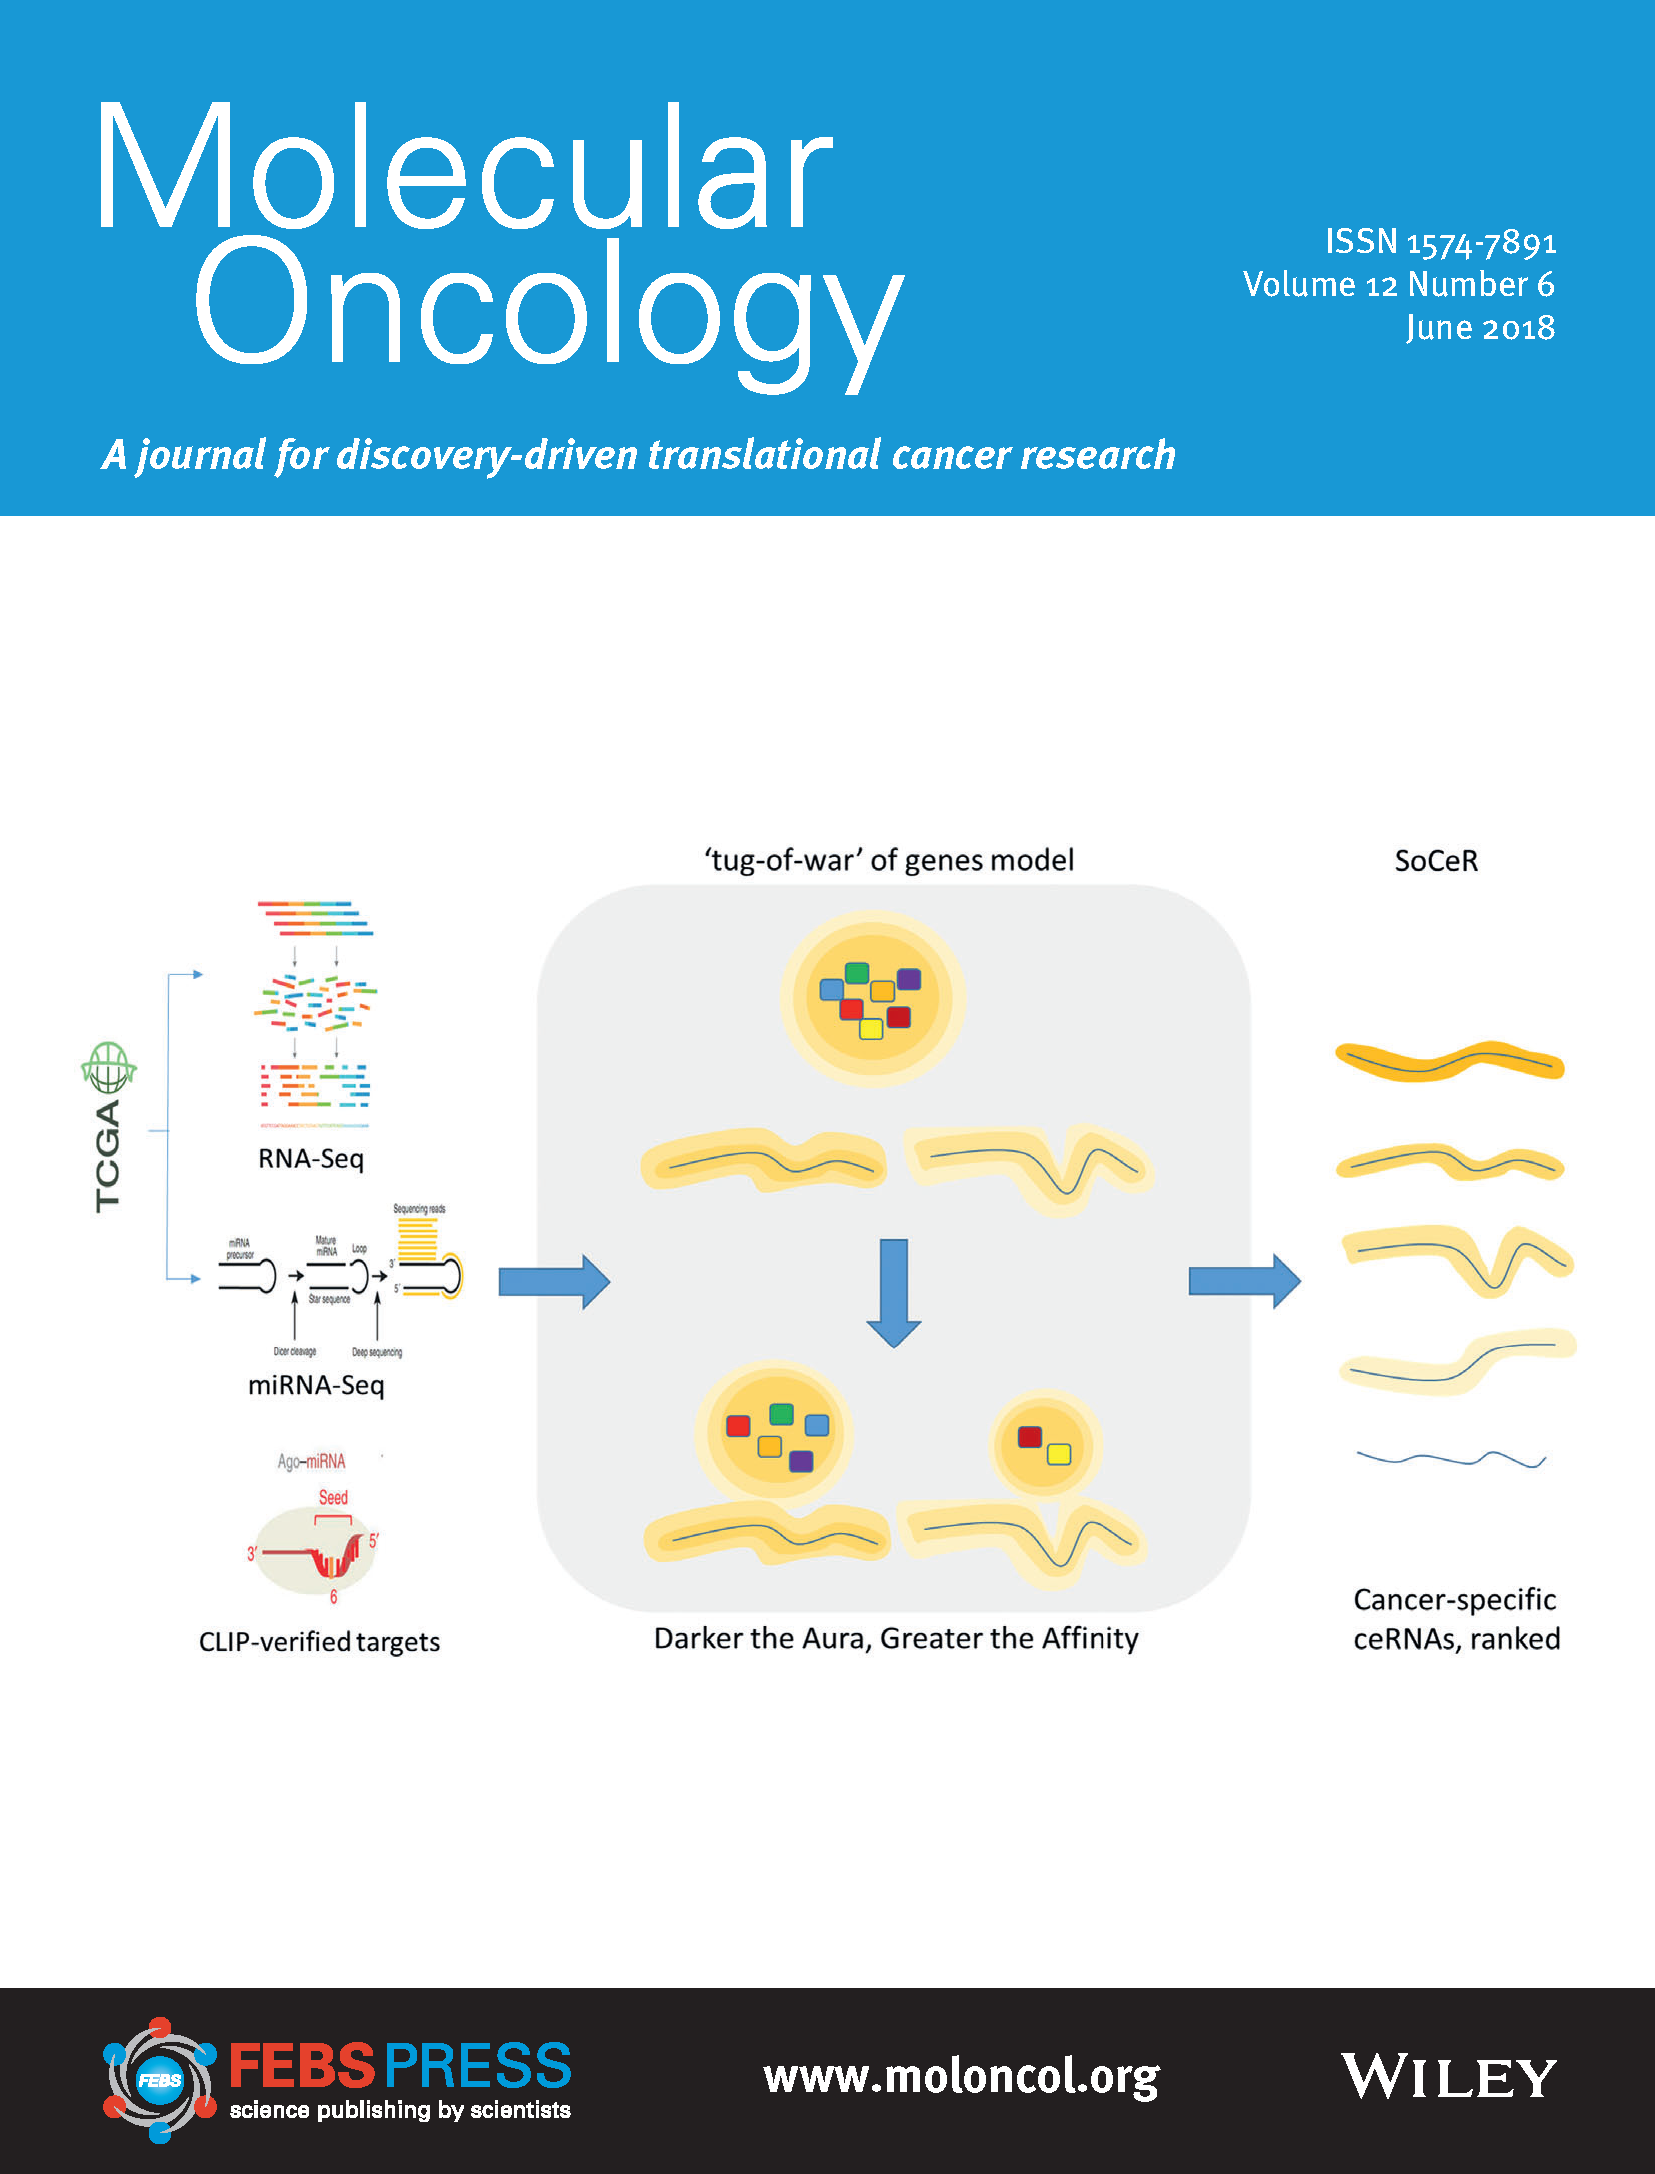 Our work on cover page of June 2018 issue of Molecular Oncology